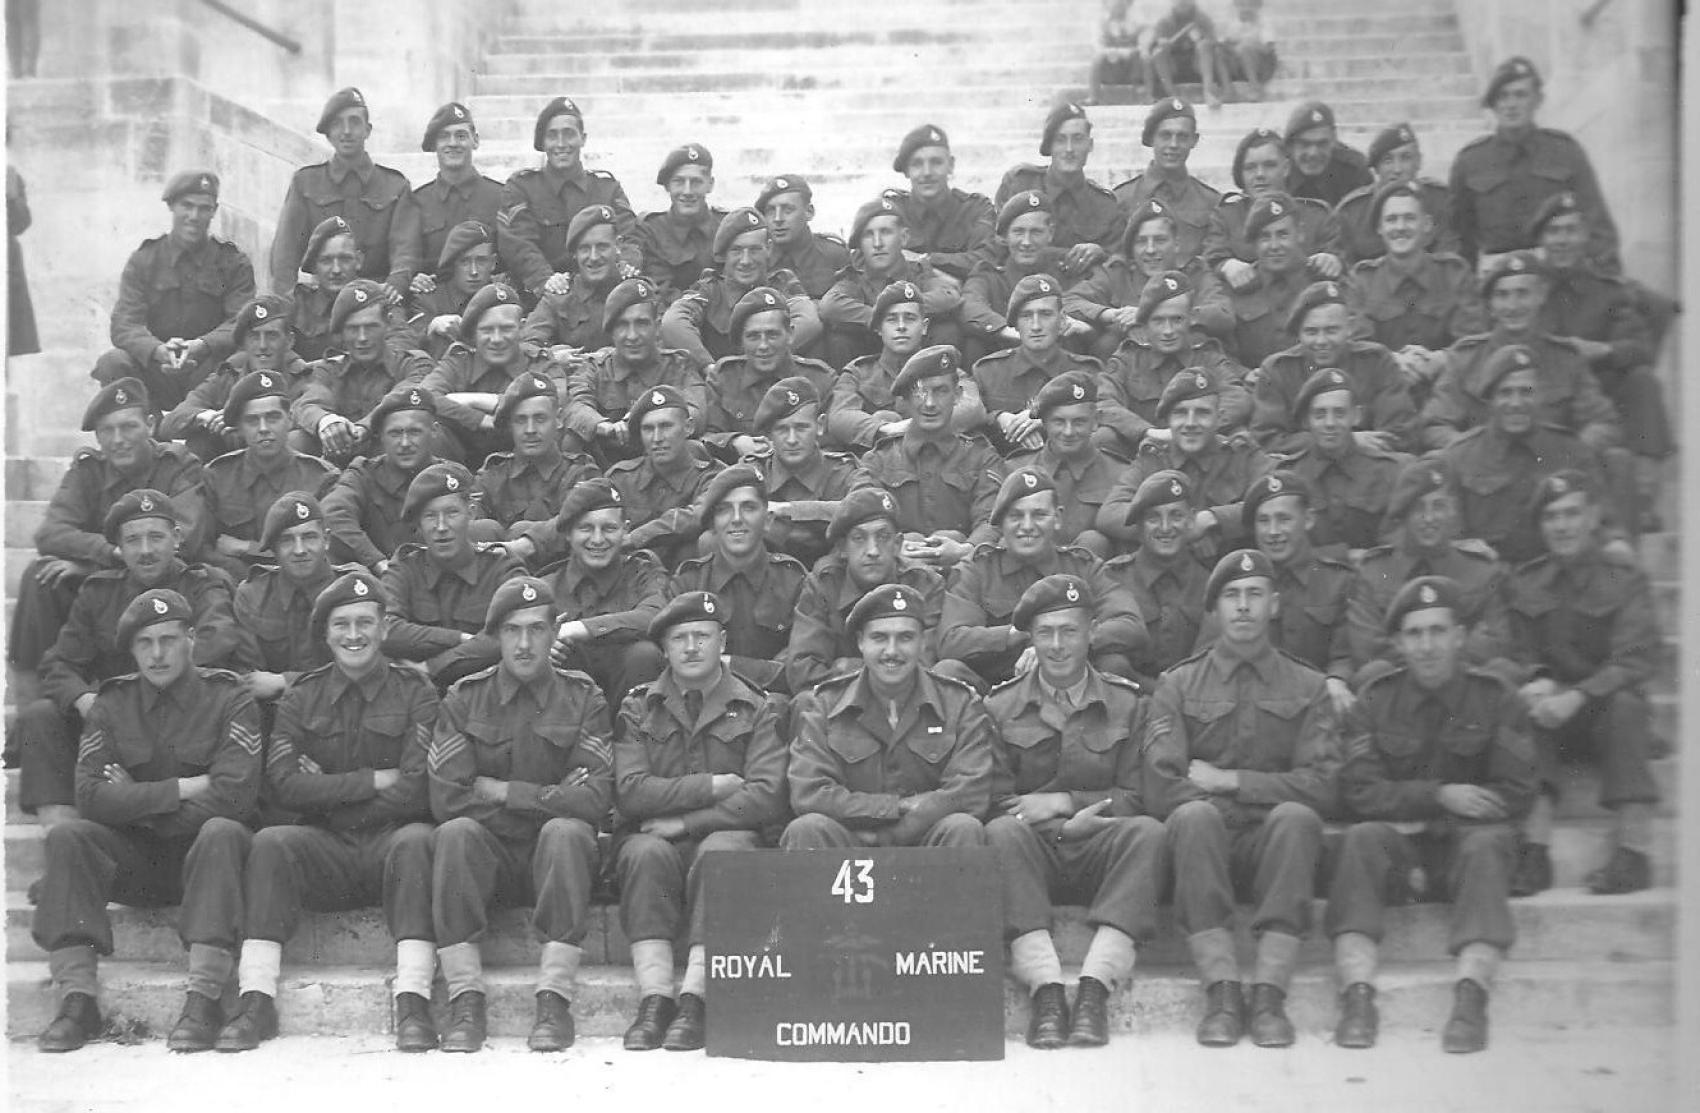 43 RM Commando  'A' Troop